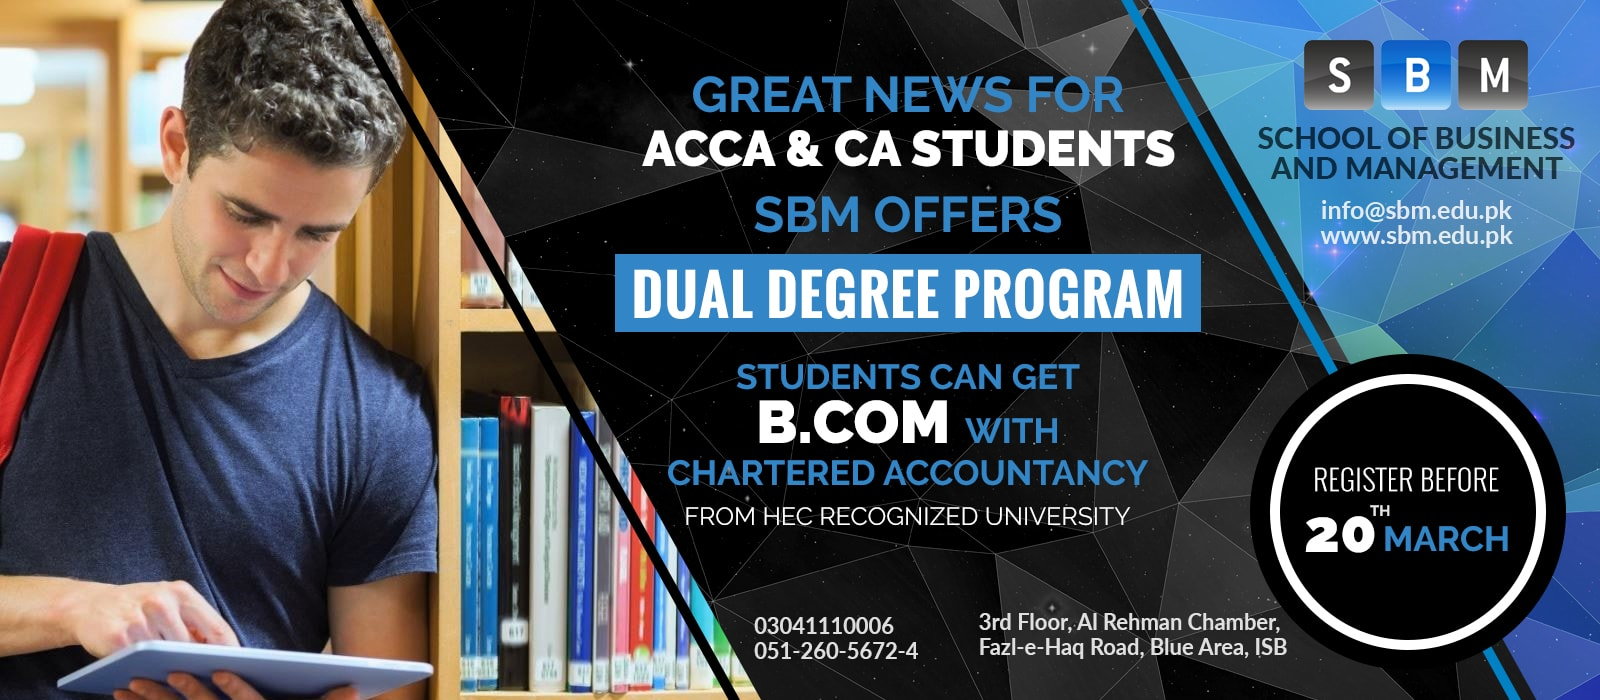 Get B.COM degree along with your Chartered Accountancy